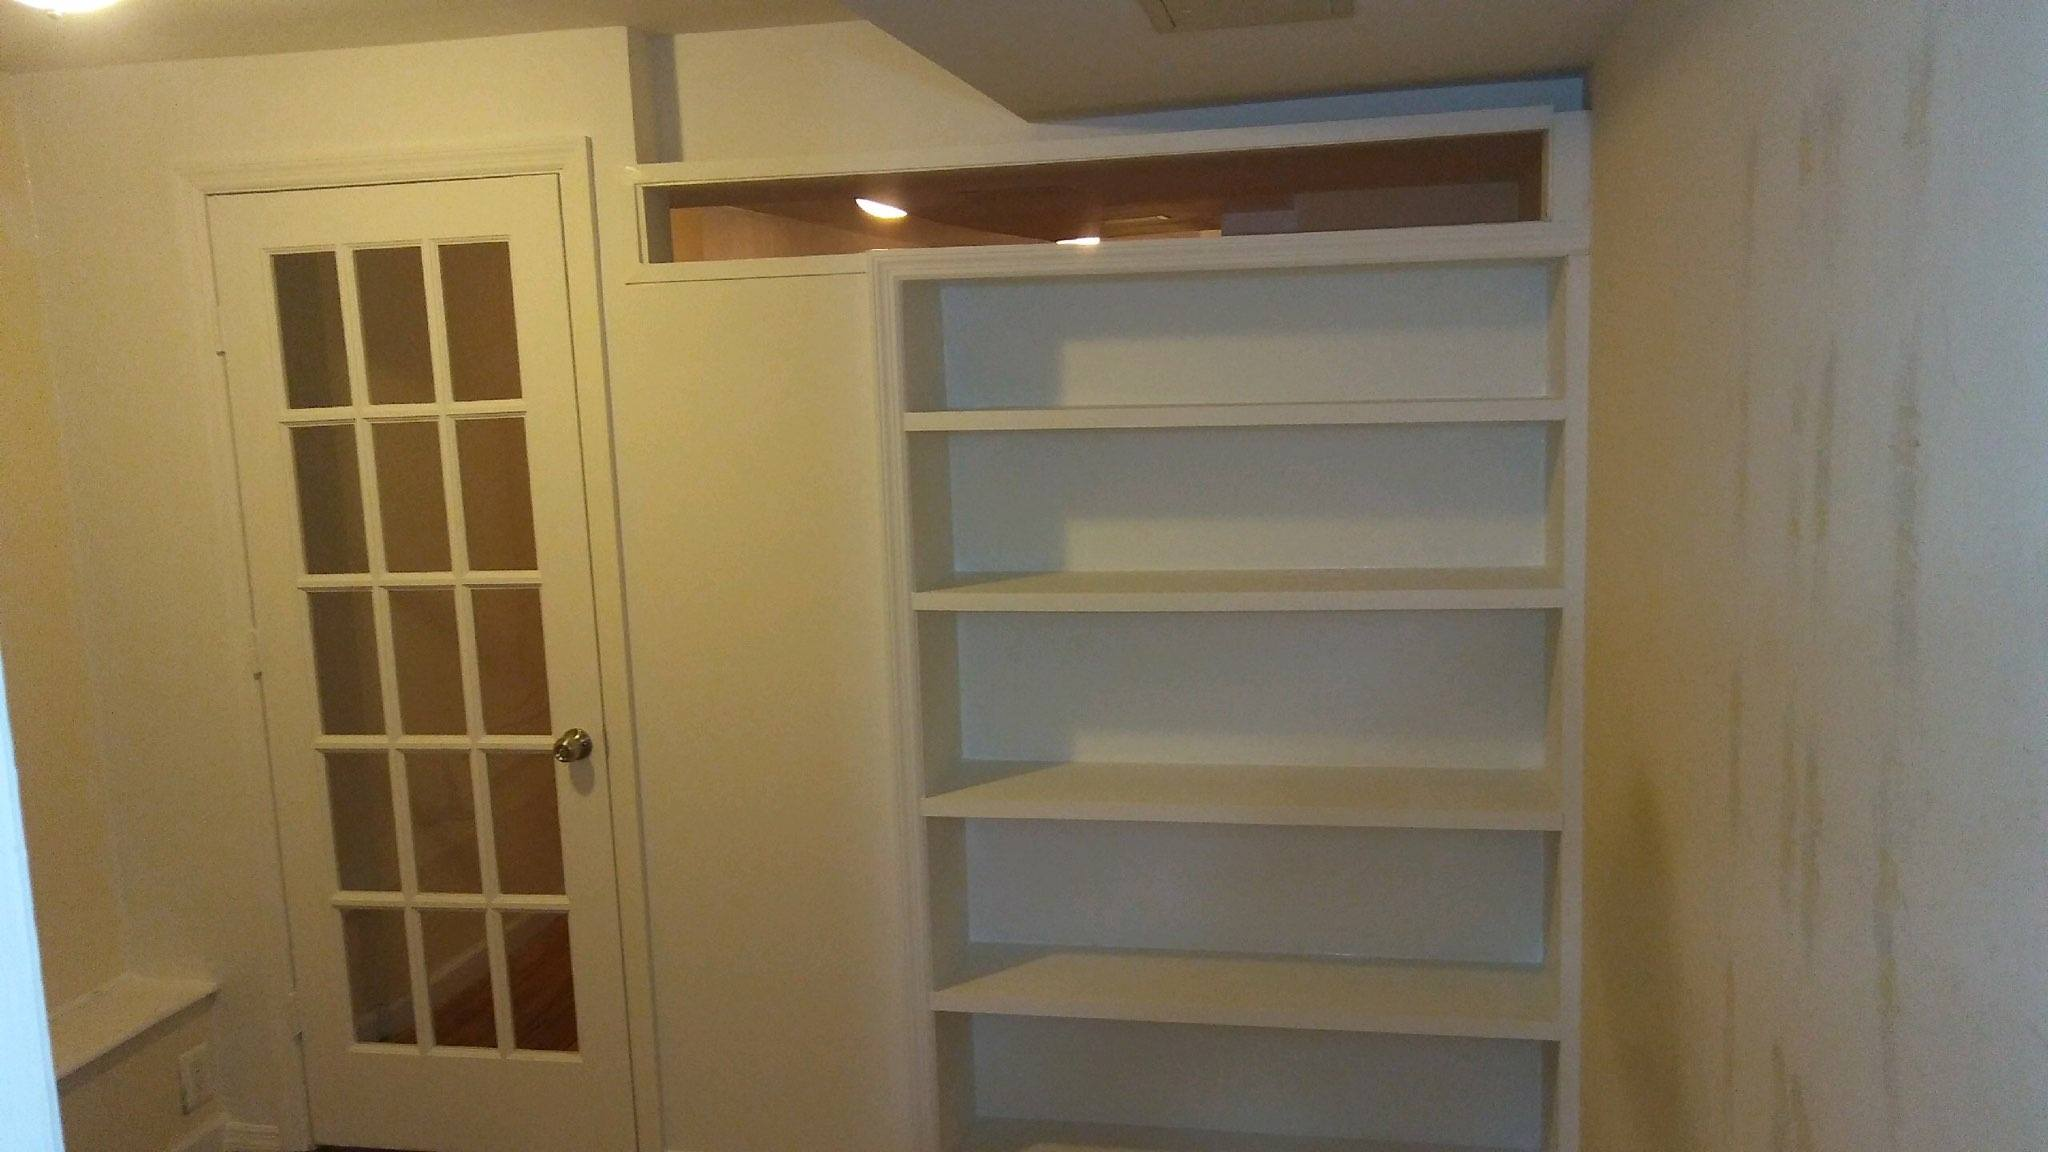 Wall 2 NYs Bookcase With A French Door And Plexiglass Transom Is Custom Job That Allows For Both Privacy Light Cost 1850